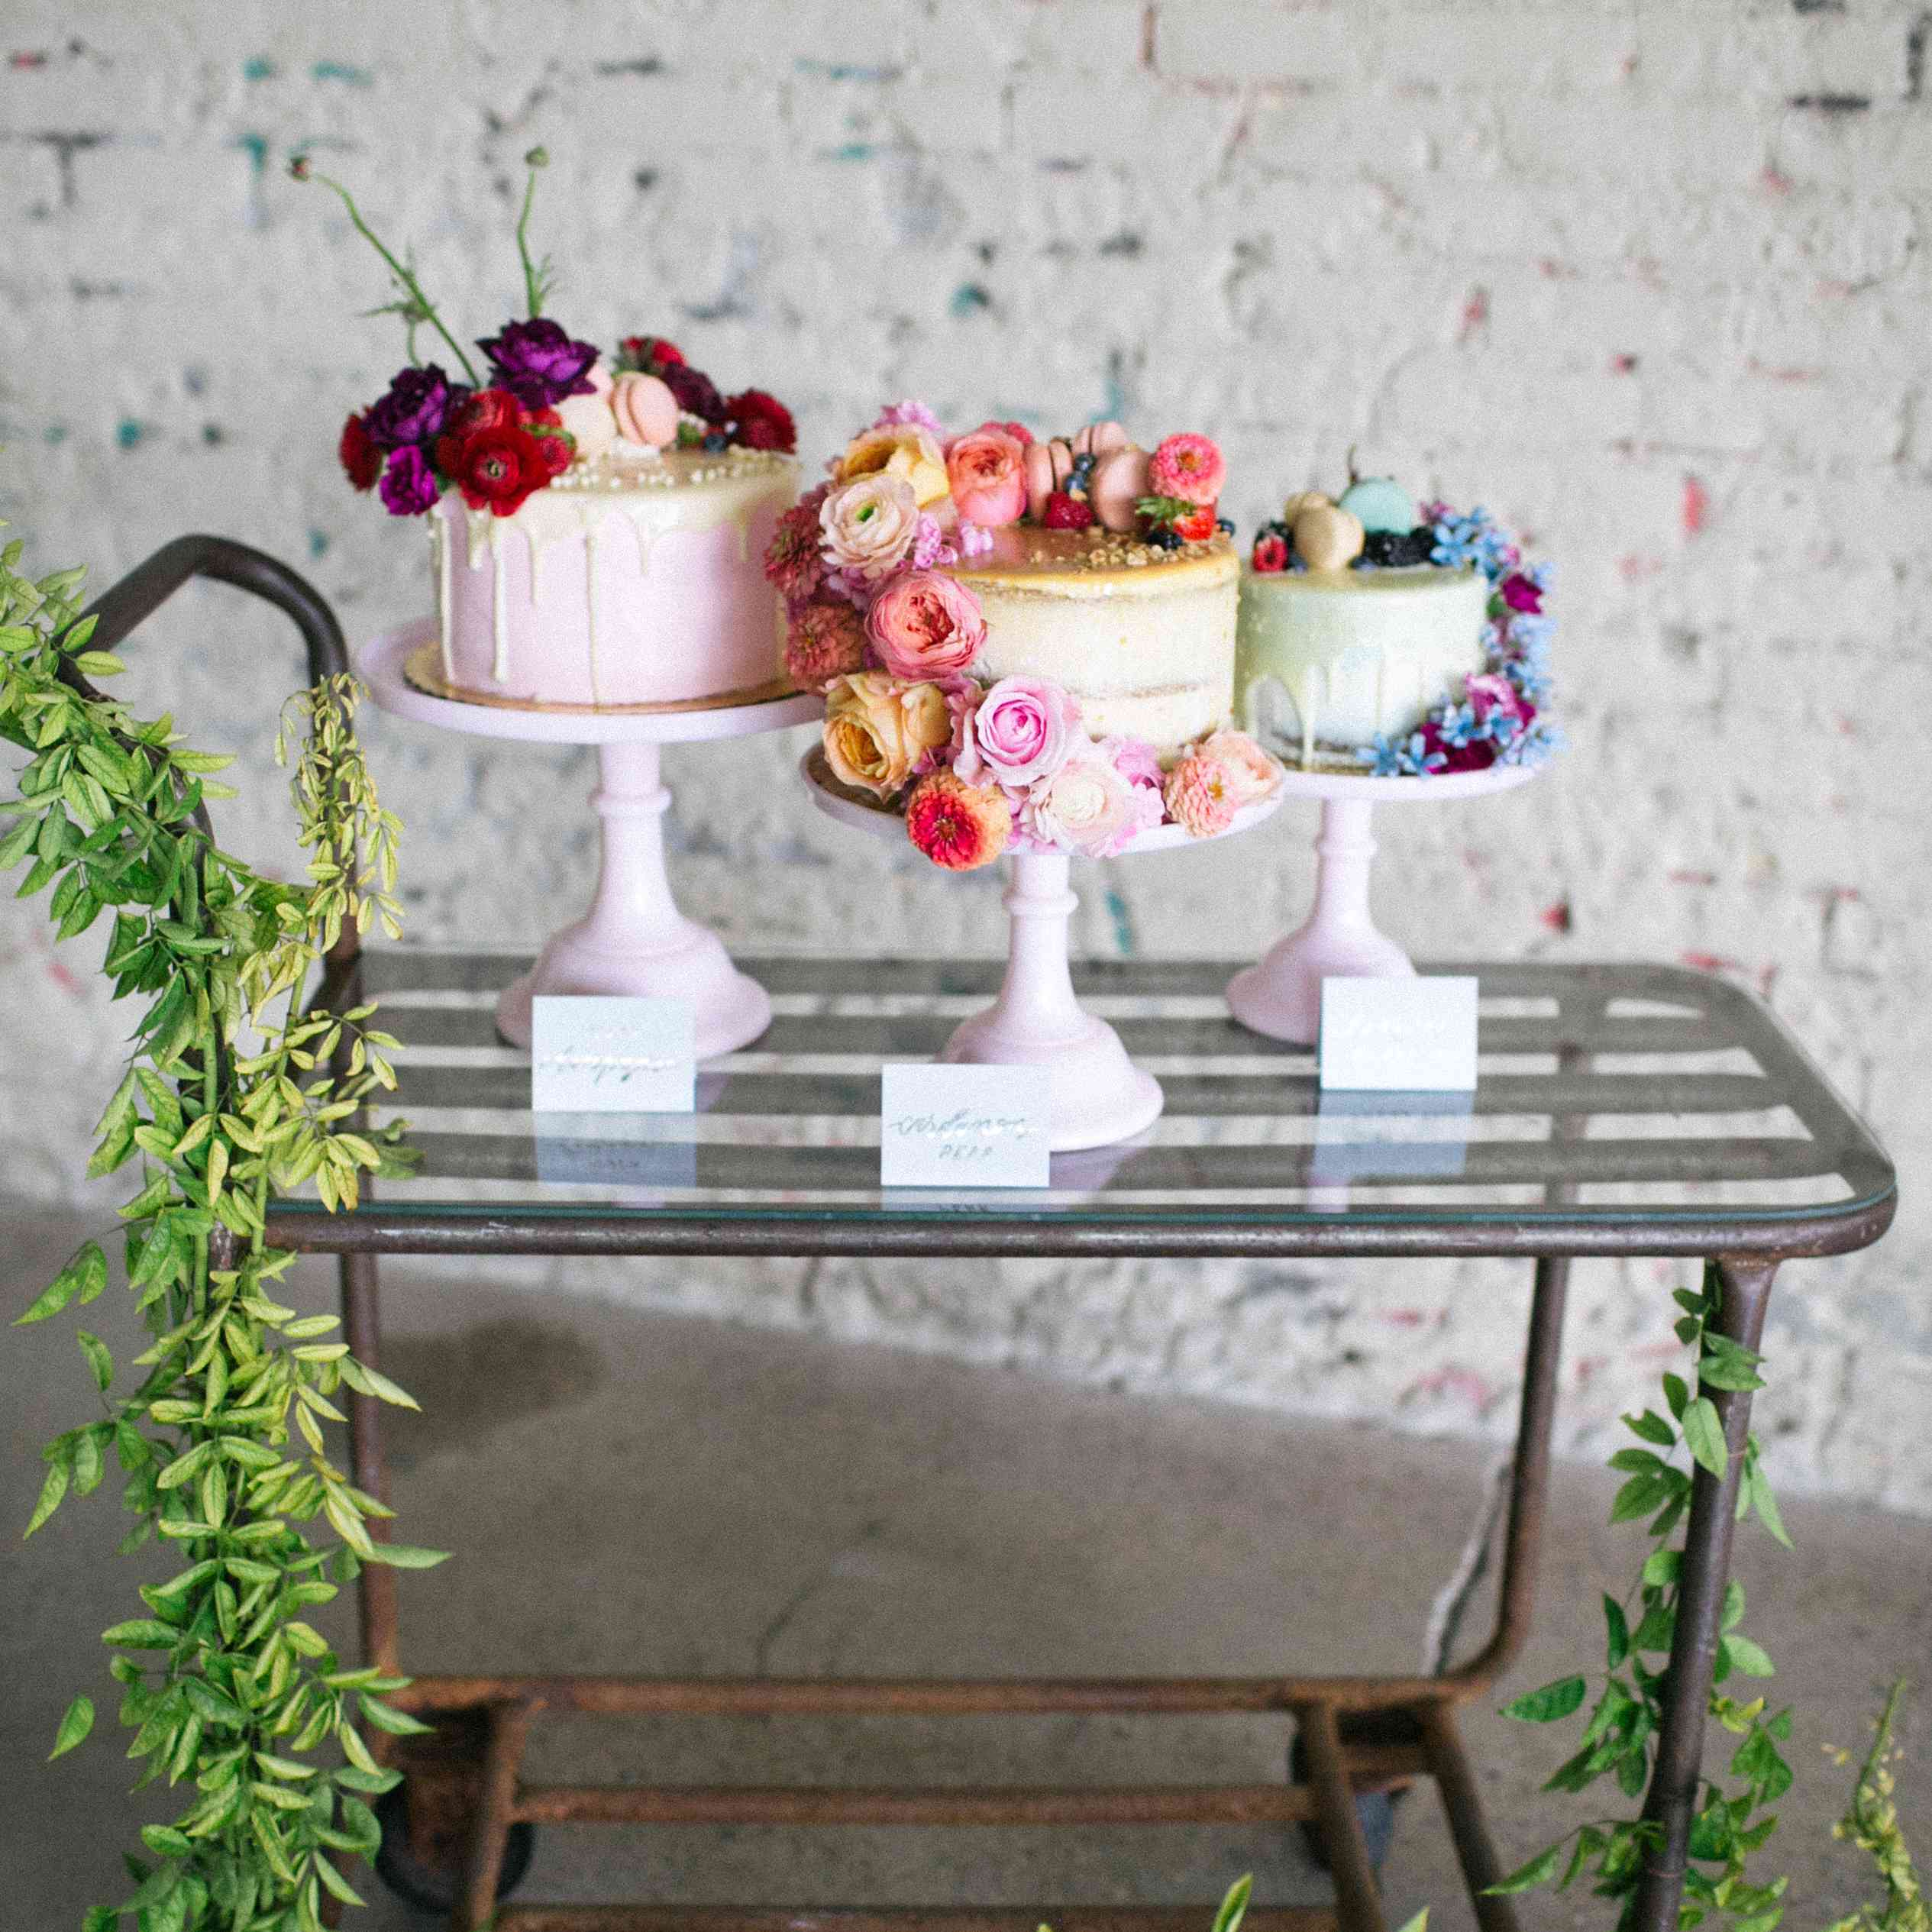 Three wedding cakes on a rolling cart